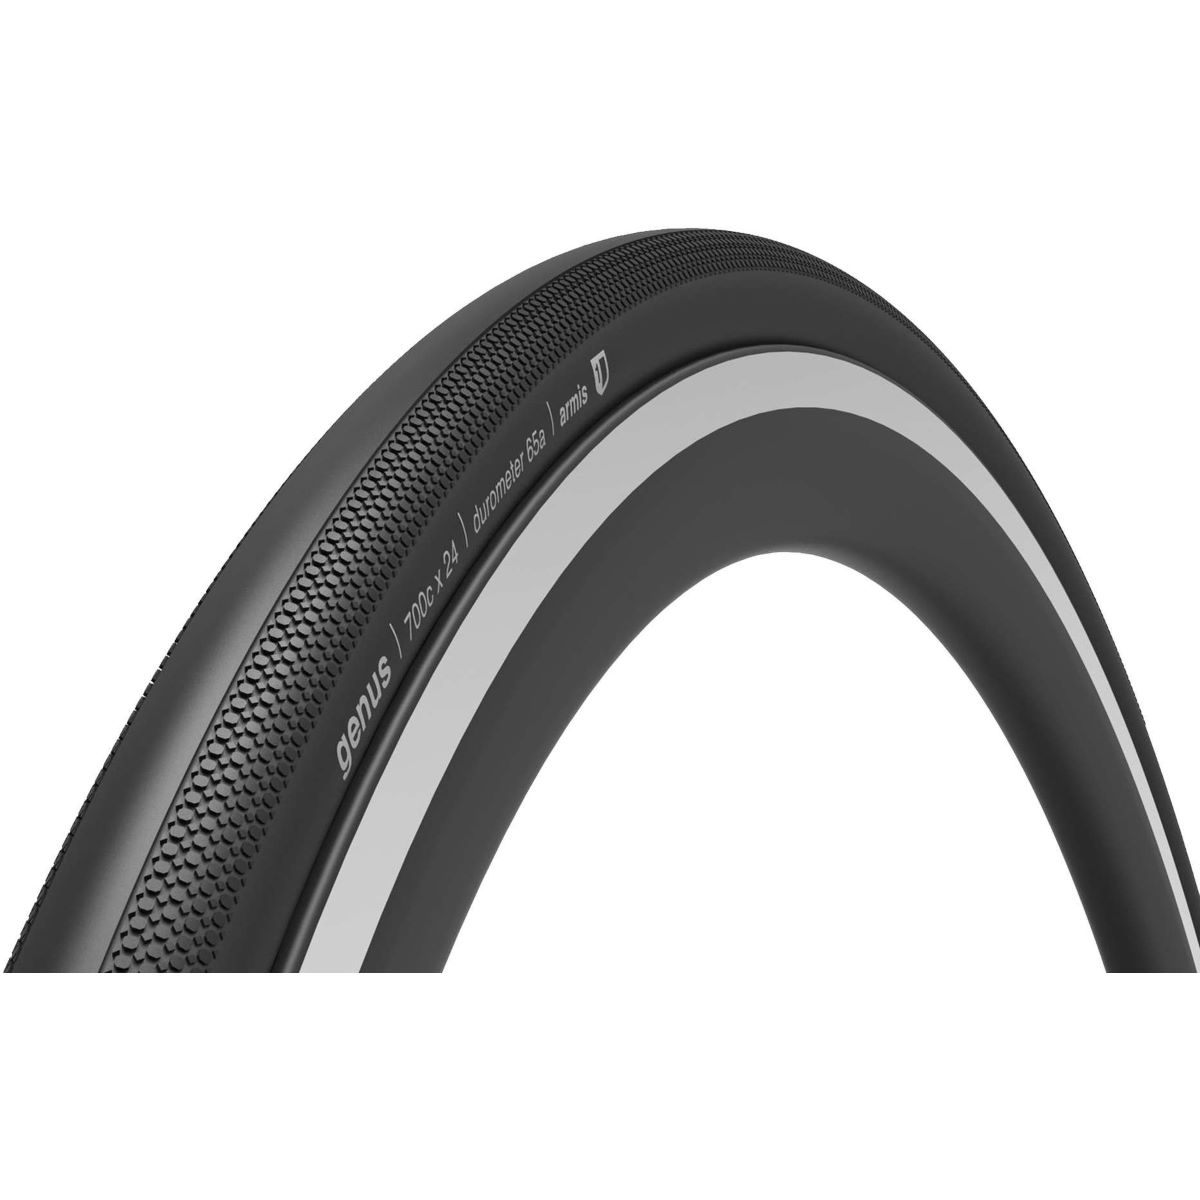 Ere Research Genus Clincher 120TPI Folding Road Tyre - Cubiertas